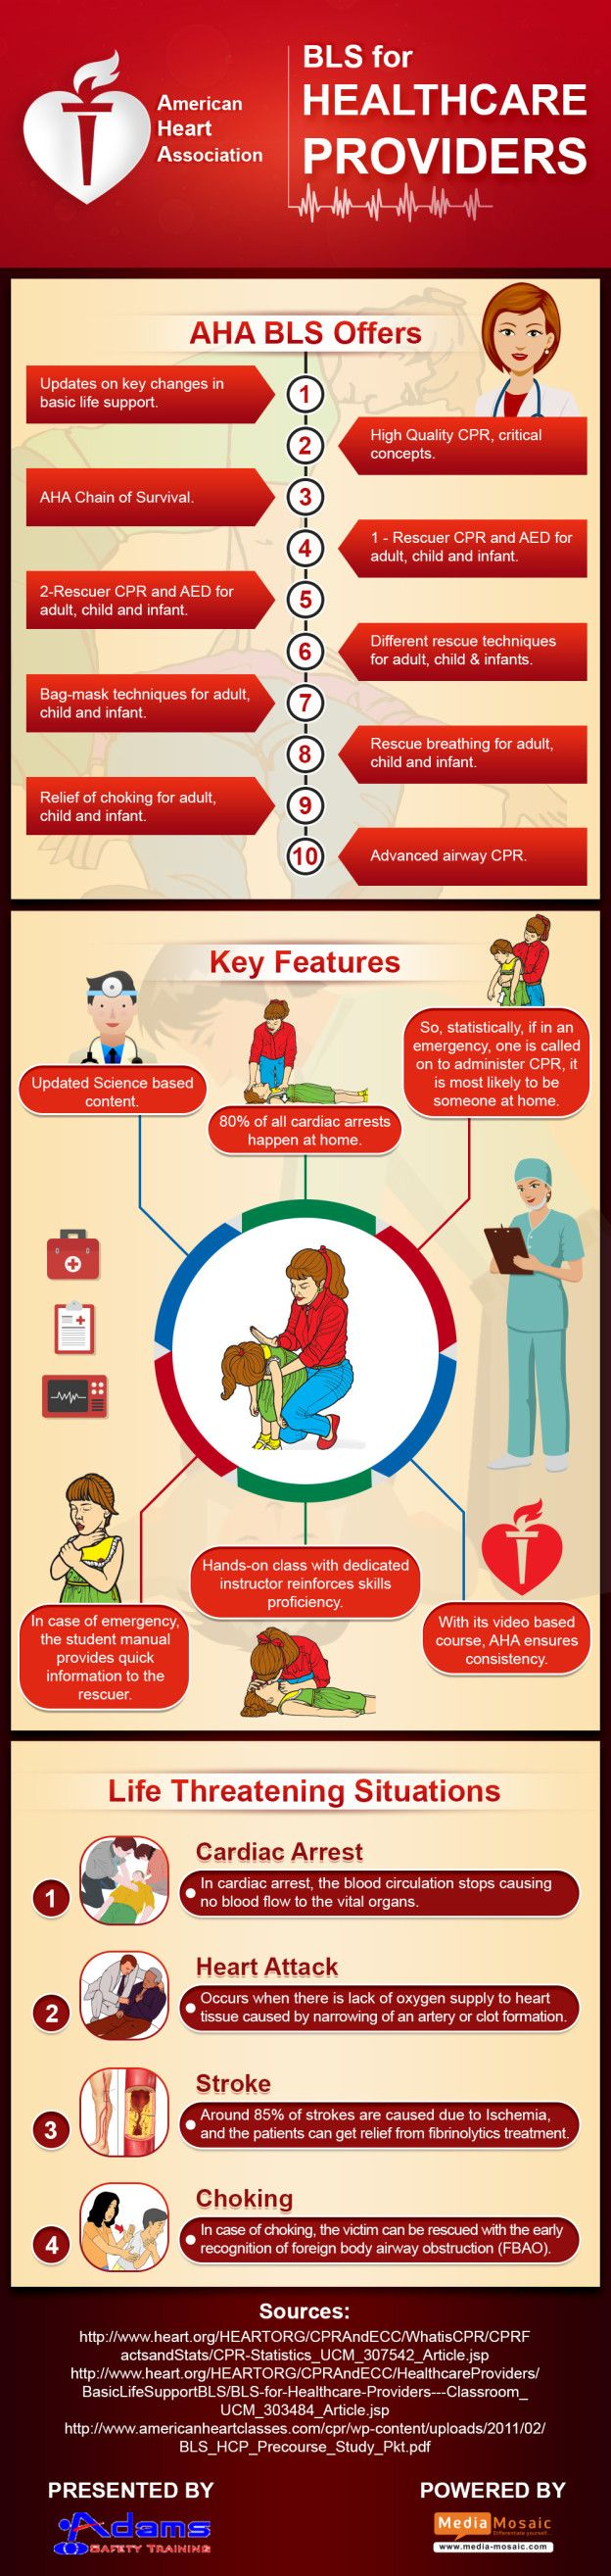 This Infographic focuses on the key features of American Heart Association (AHA) BLS Training offered to Healthcare Providers. It also highlights the life threatening emergencies that should be recognized by healthcare professionals.